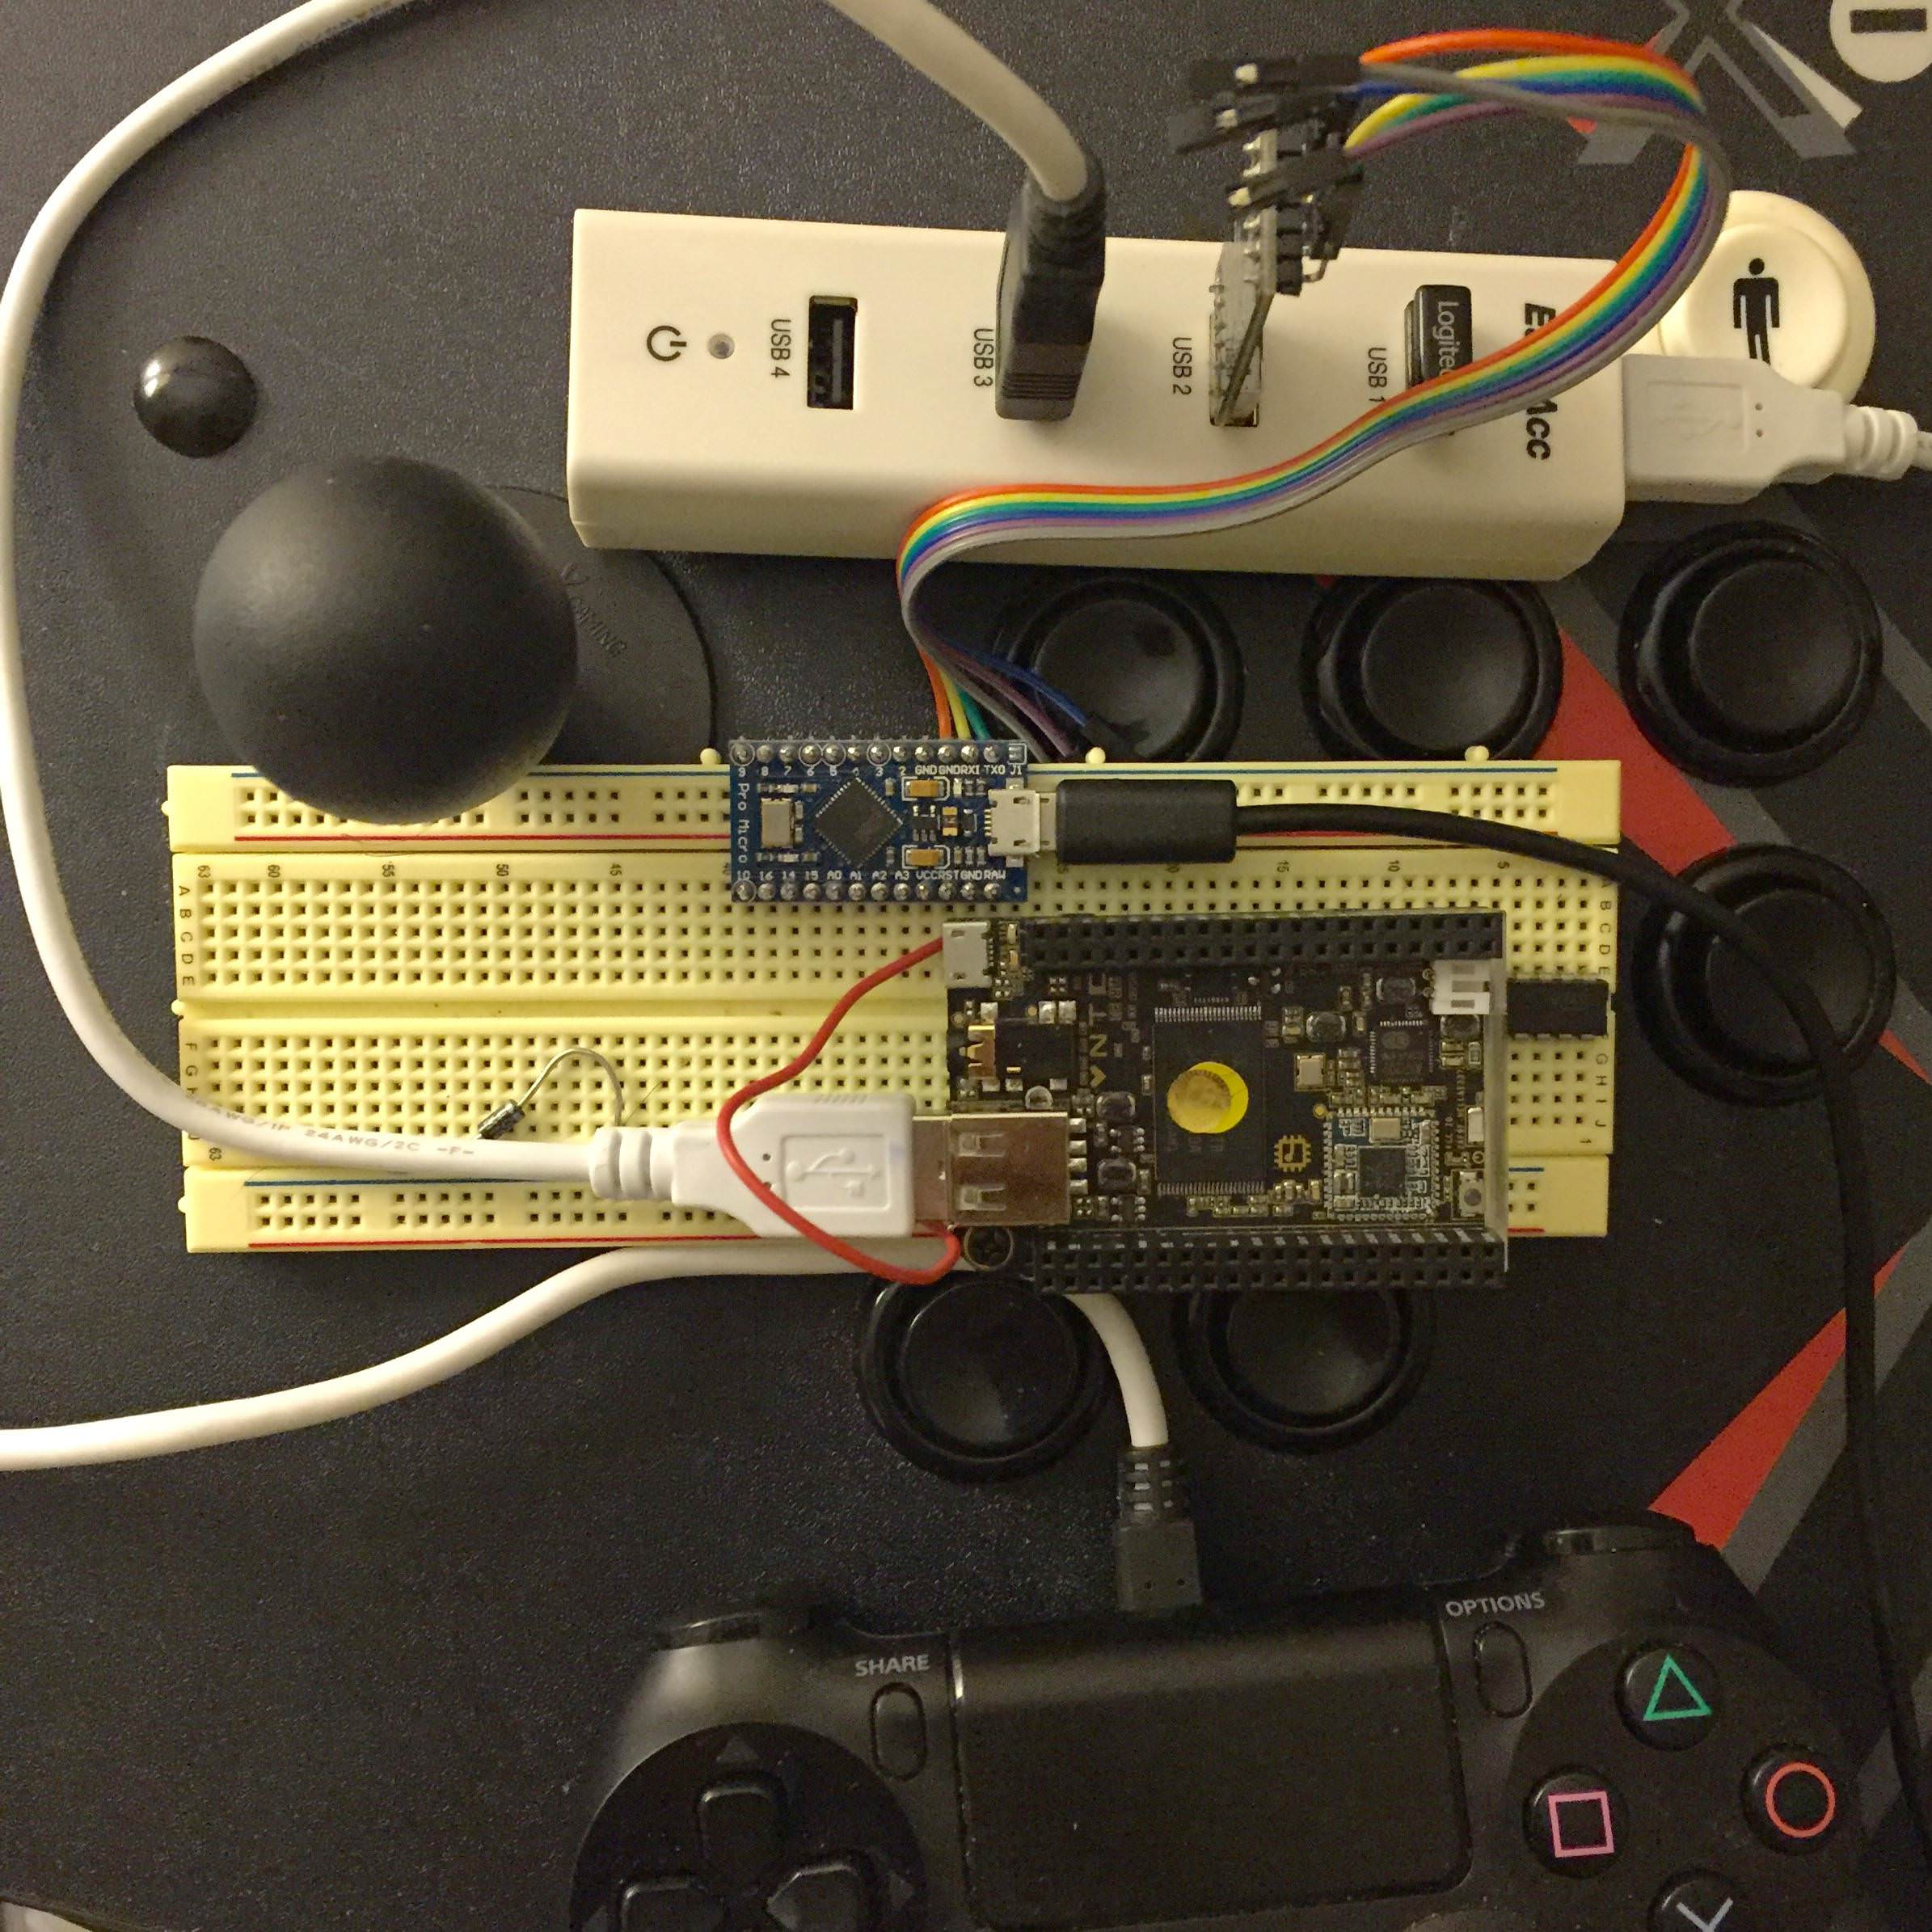 Custom Gamepad from scratch - DIY Project? - Offtopic - Armory 3D